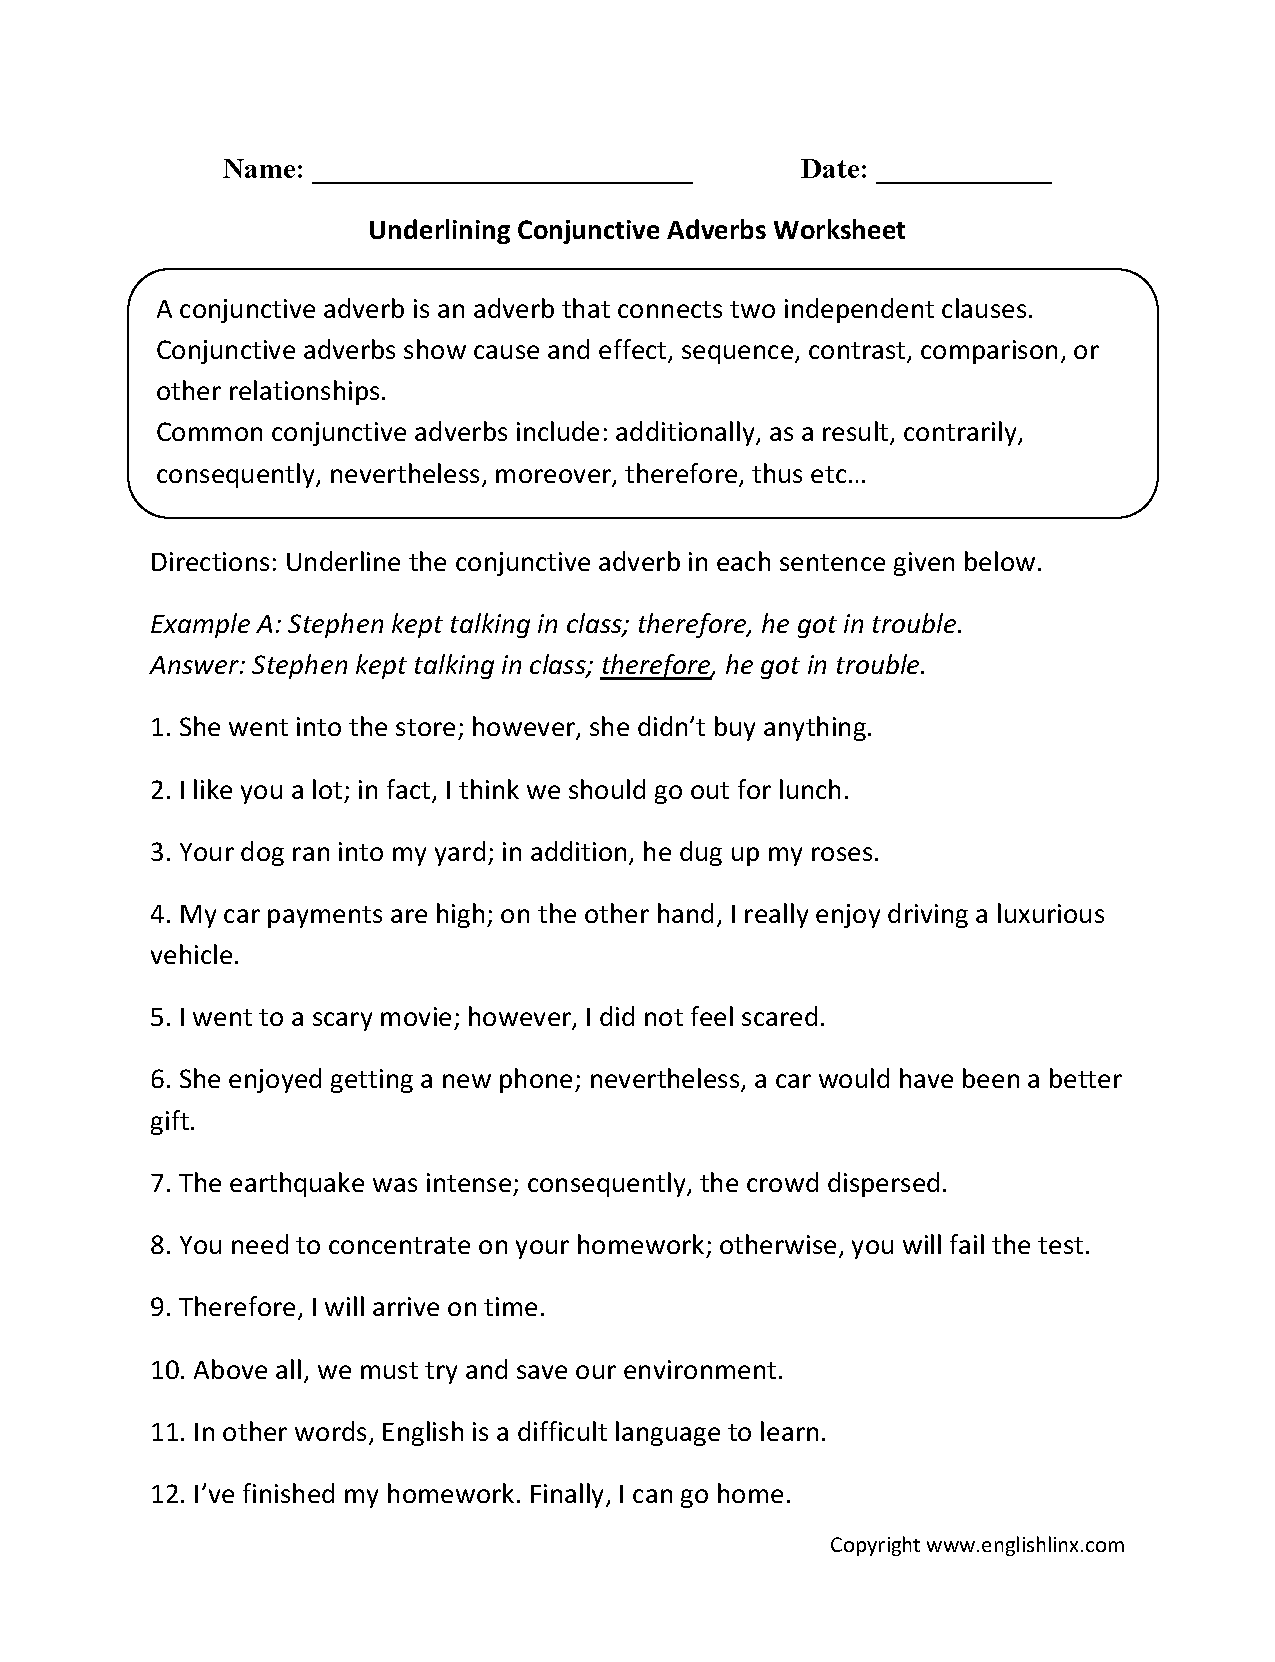 Weirdmailus  Unusual Englishlinxcom  Conjunctions Worksheets With Lovely Worksheet With Nice Maths Times Tables Worksheets Also Arithmetic Progression Worksheet In Addition St Grade Reading Comprehension Worksheets Free Printable And Mental Maths Ks Worksheets As Well As Worksheets For Math Nd Grade Additionally Worksheet Of Time From Englishlinxcom With Weirdmailus  Lovely Englishlinxcom  Conjunctions Worksheets With Nice Worksheet And Unusual Maths Times Tables Worksheets Also Arithmetic Progression Worksheet In Addition St Grade Reading Comprehension Worksheets Free Printable From Englishlinxcom